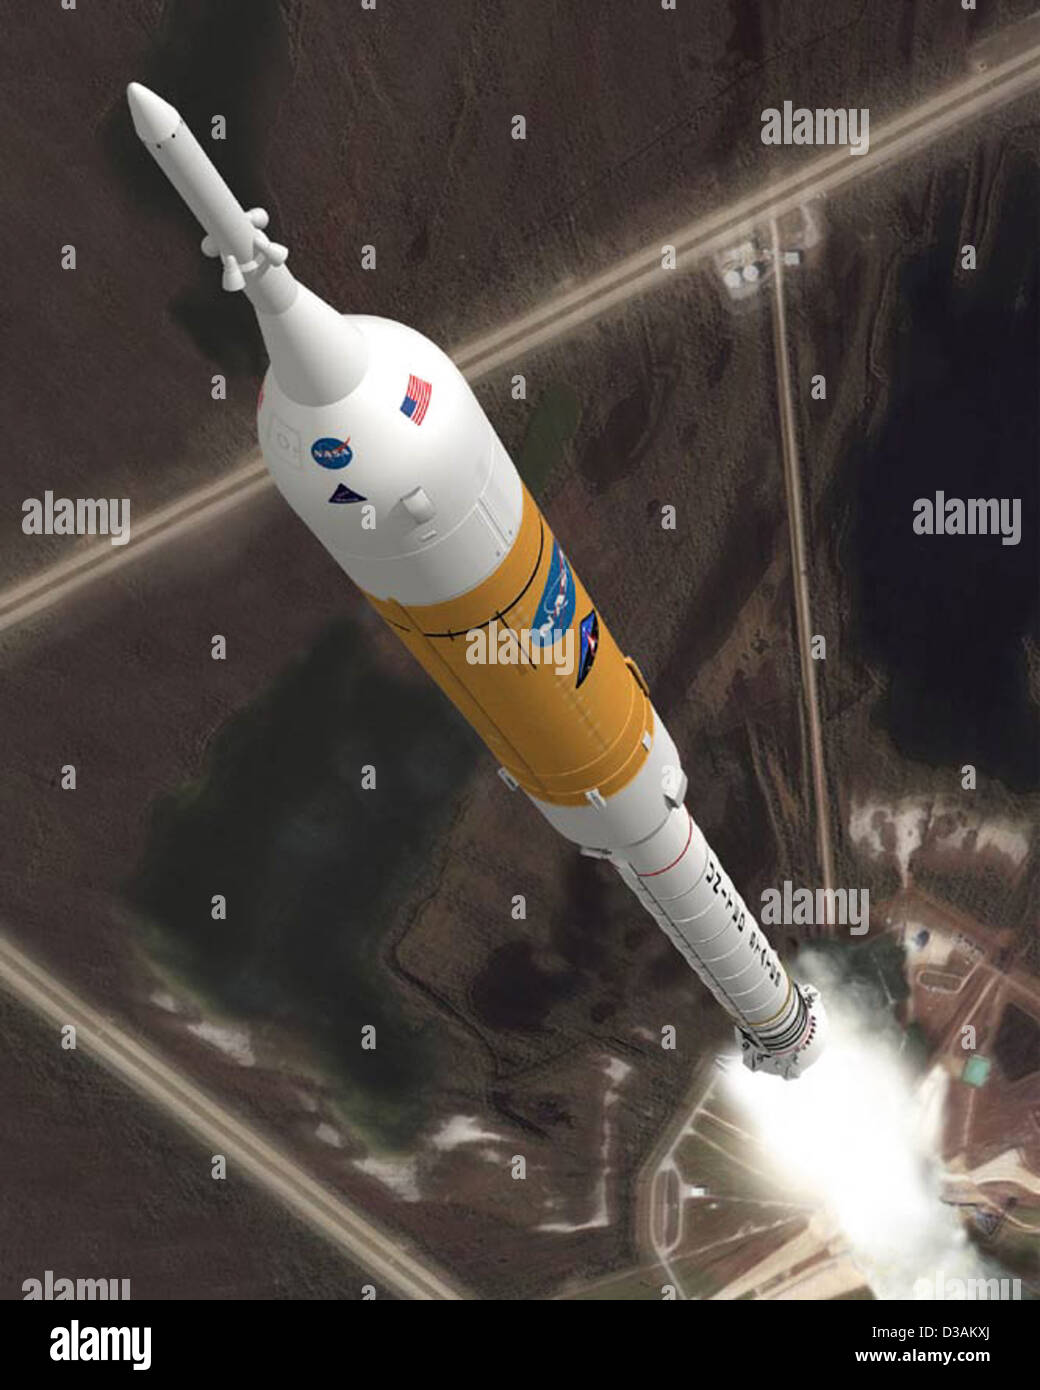 Ares Rocket Collage (February 2008) - Stock Image